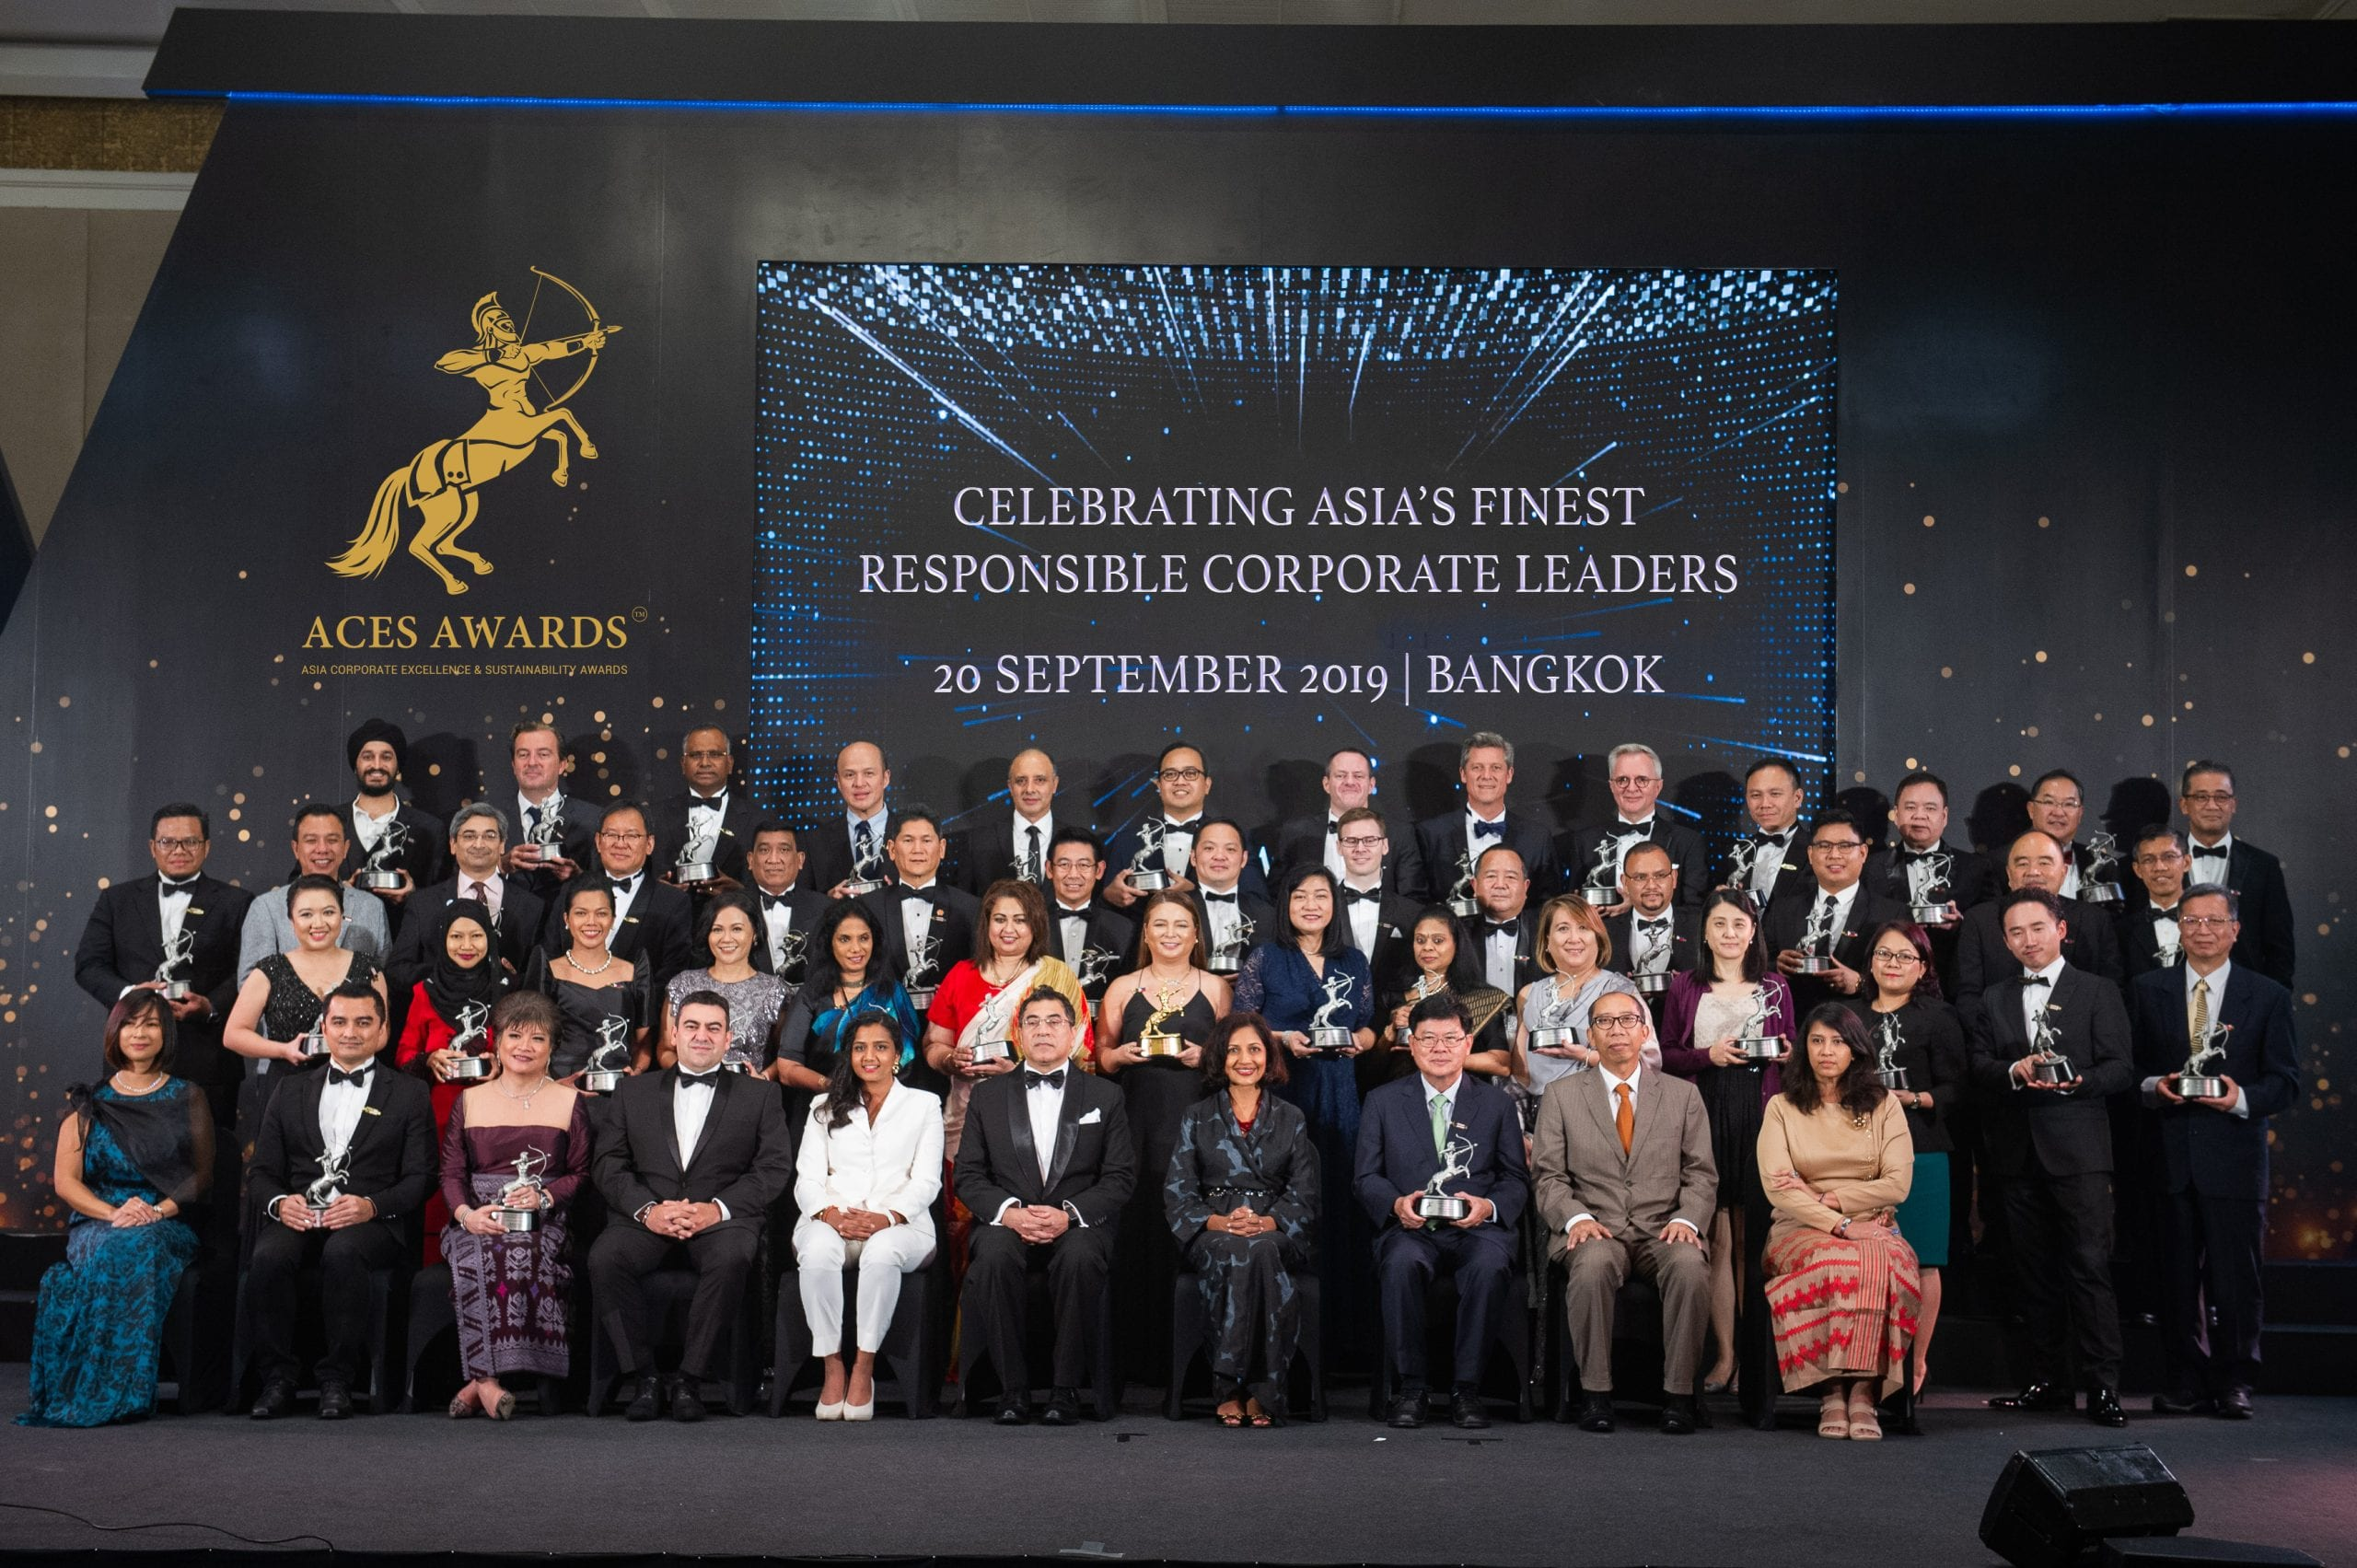 Business leaders go places with Asia Corporate Excellence & Sustainability Awards (ACES) 2019